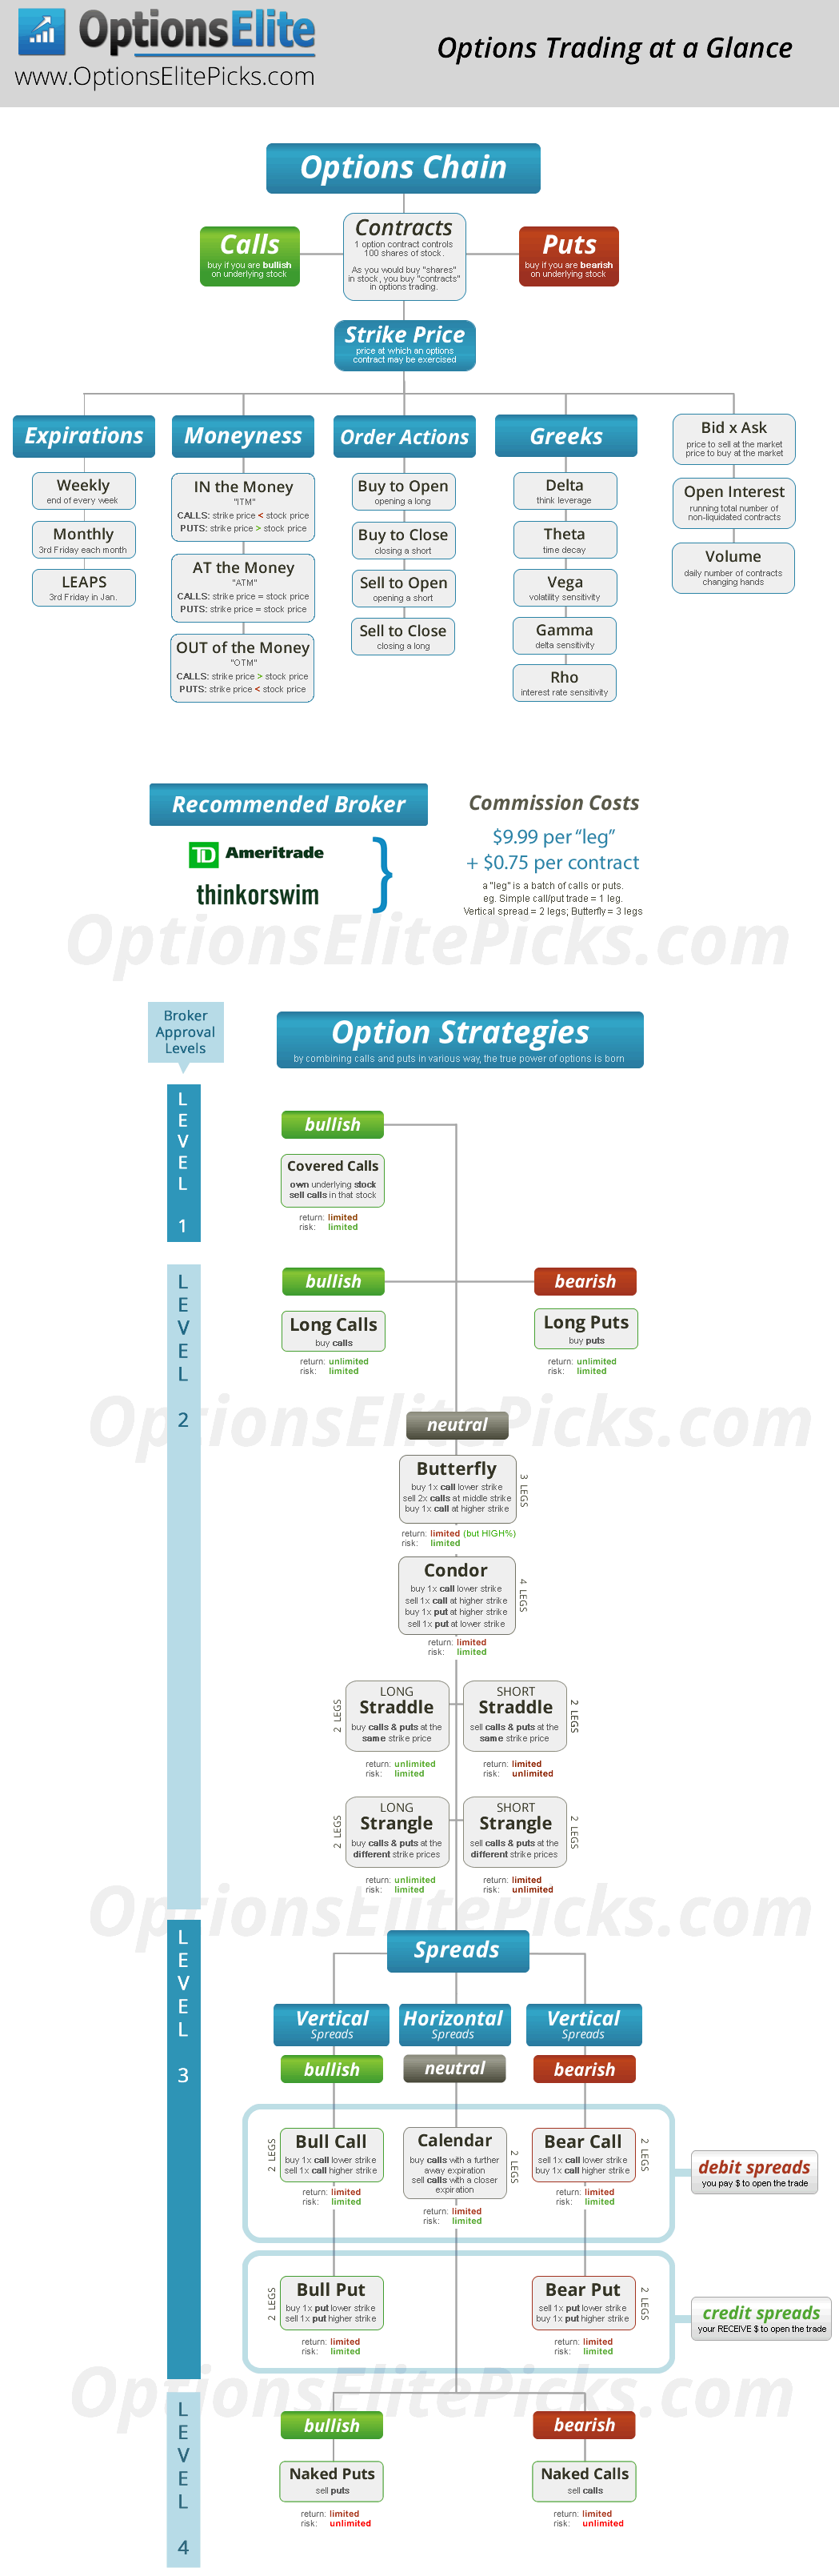 Option trading market